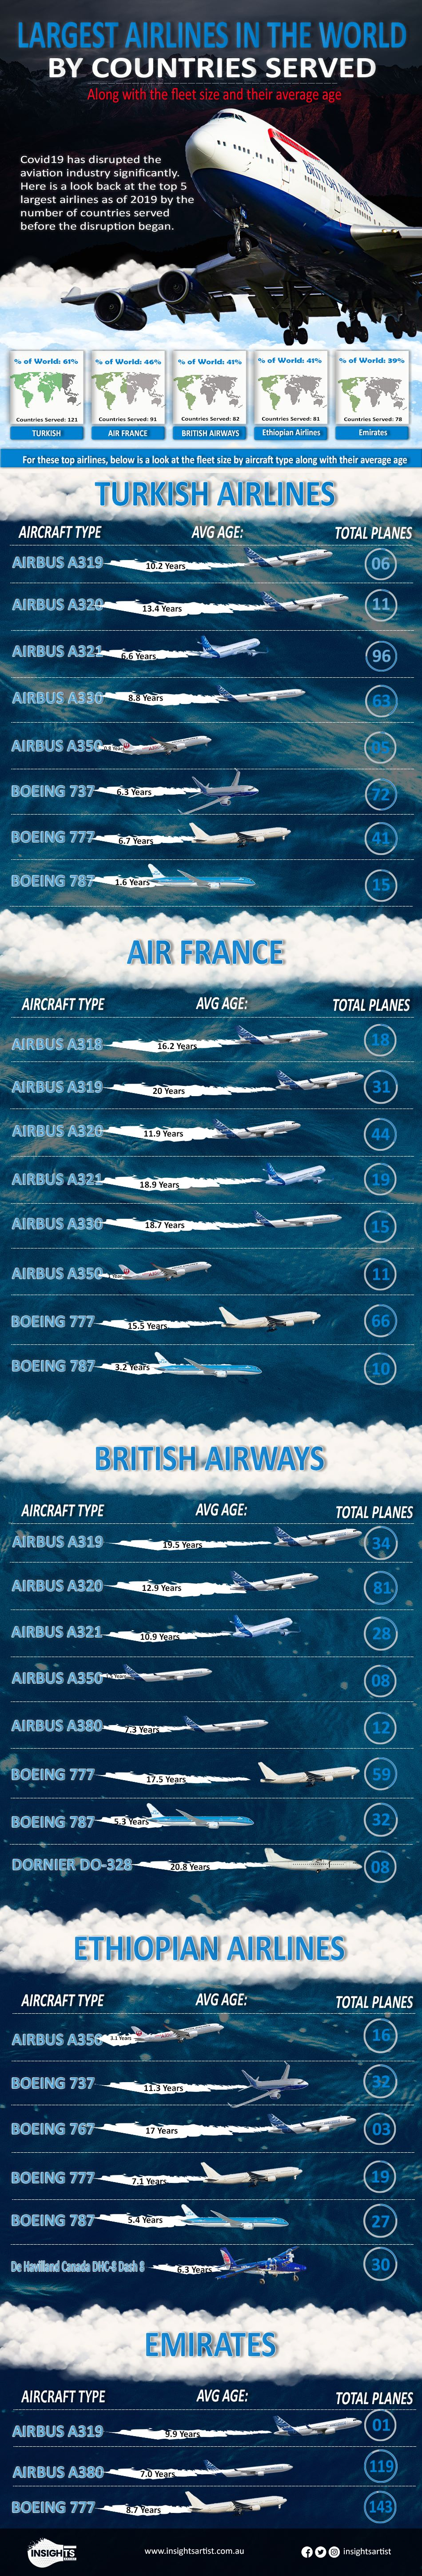 largest airlines